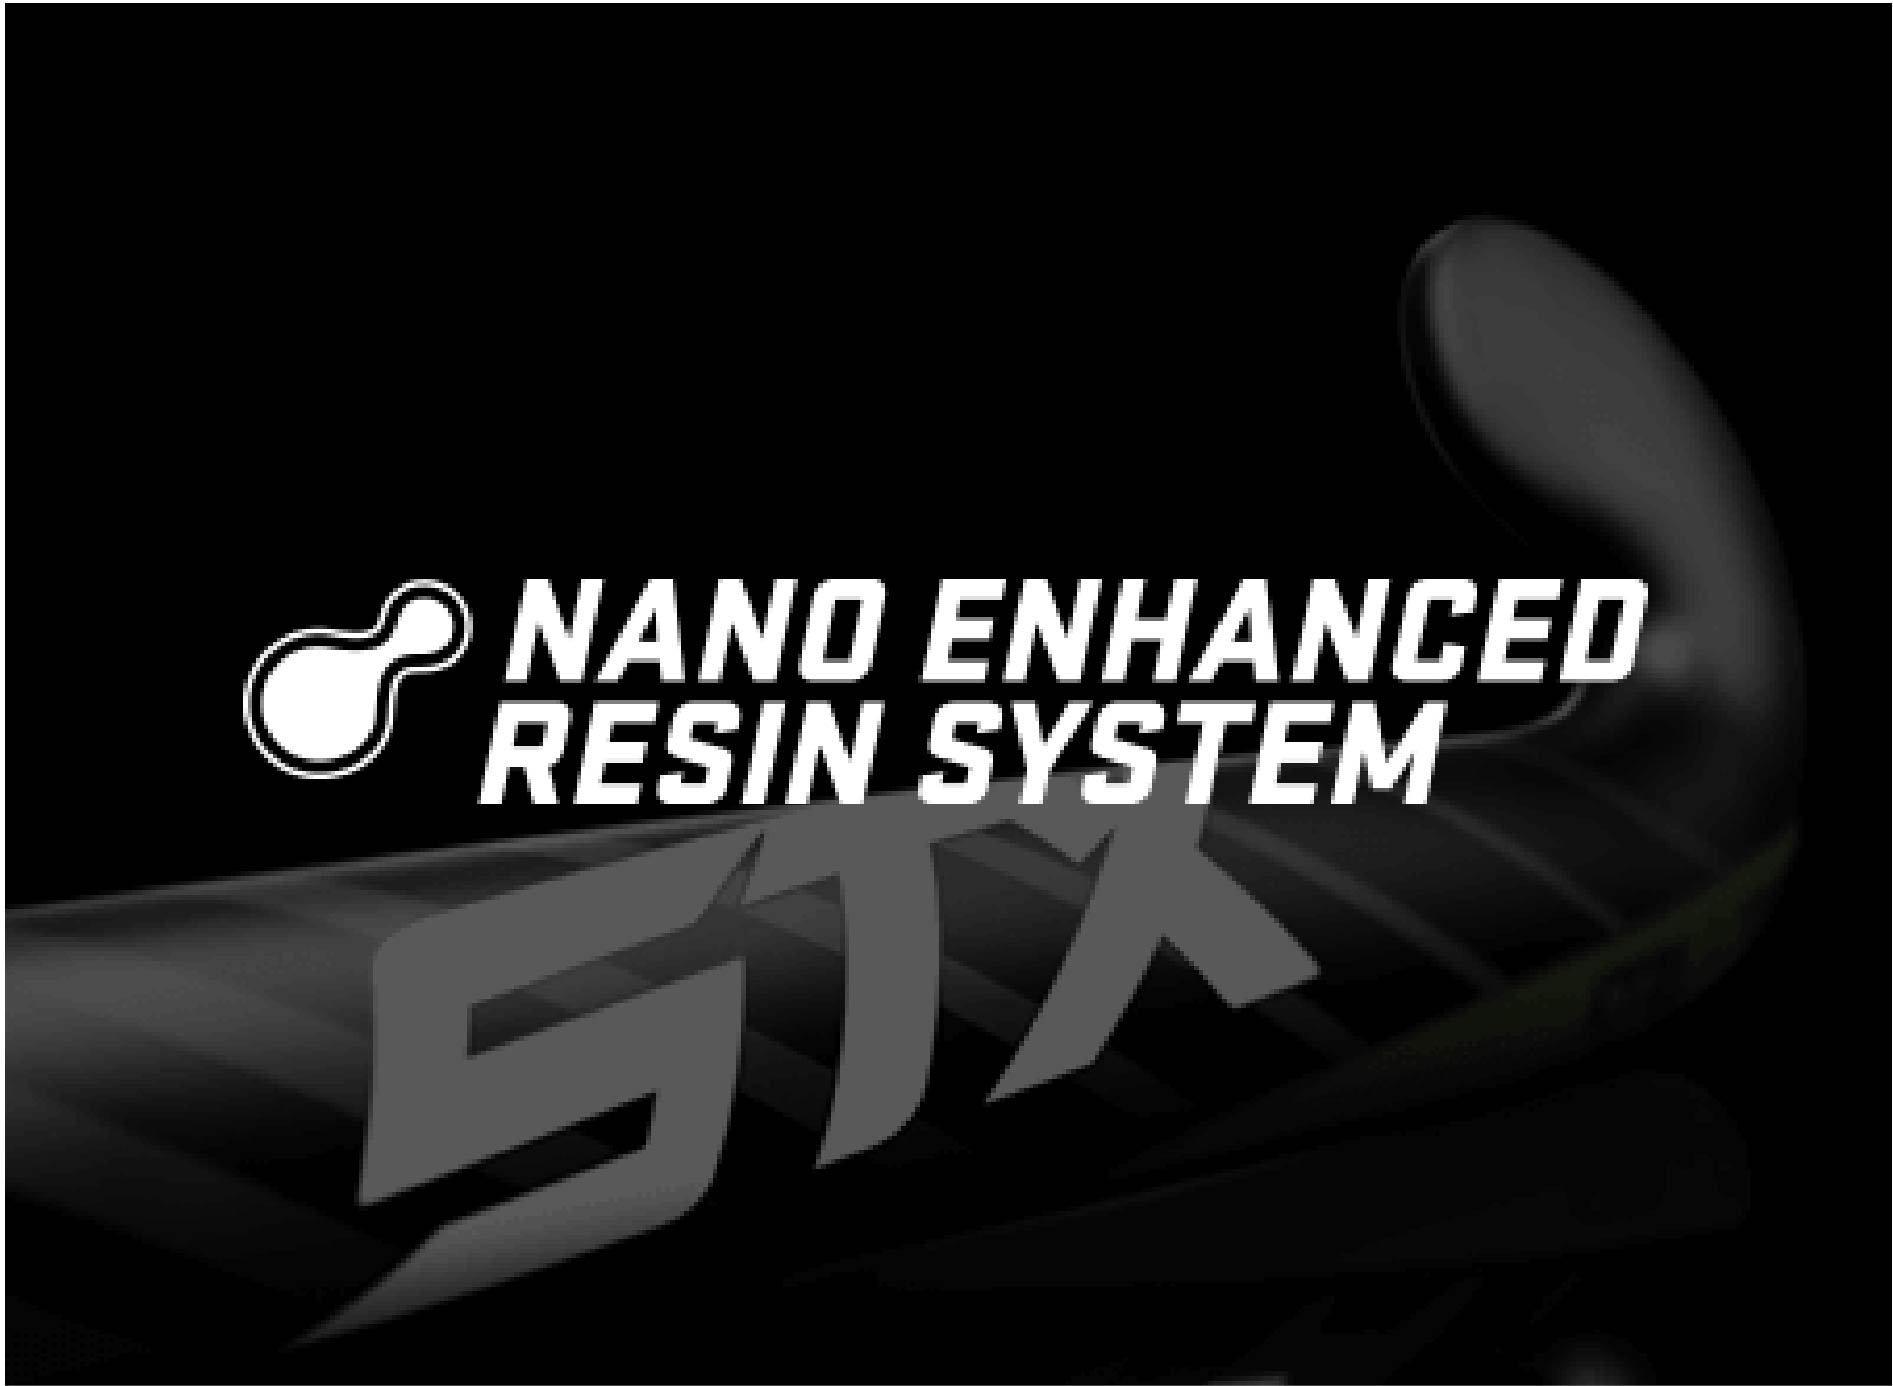 Nano Enhanced Resin System™